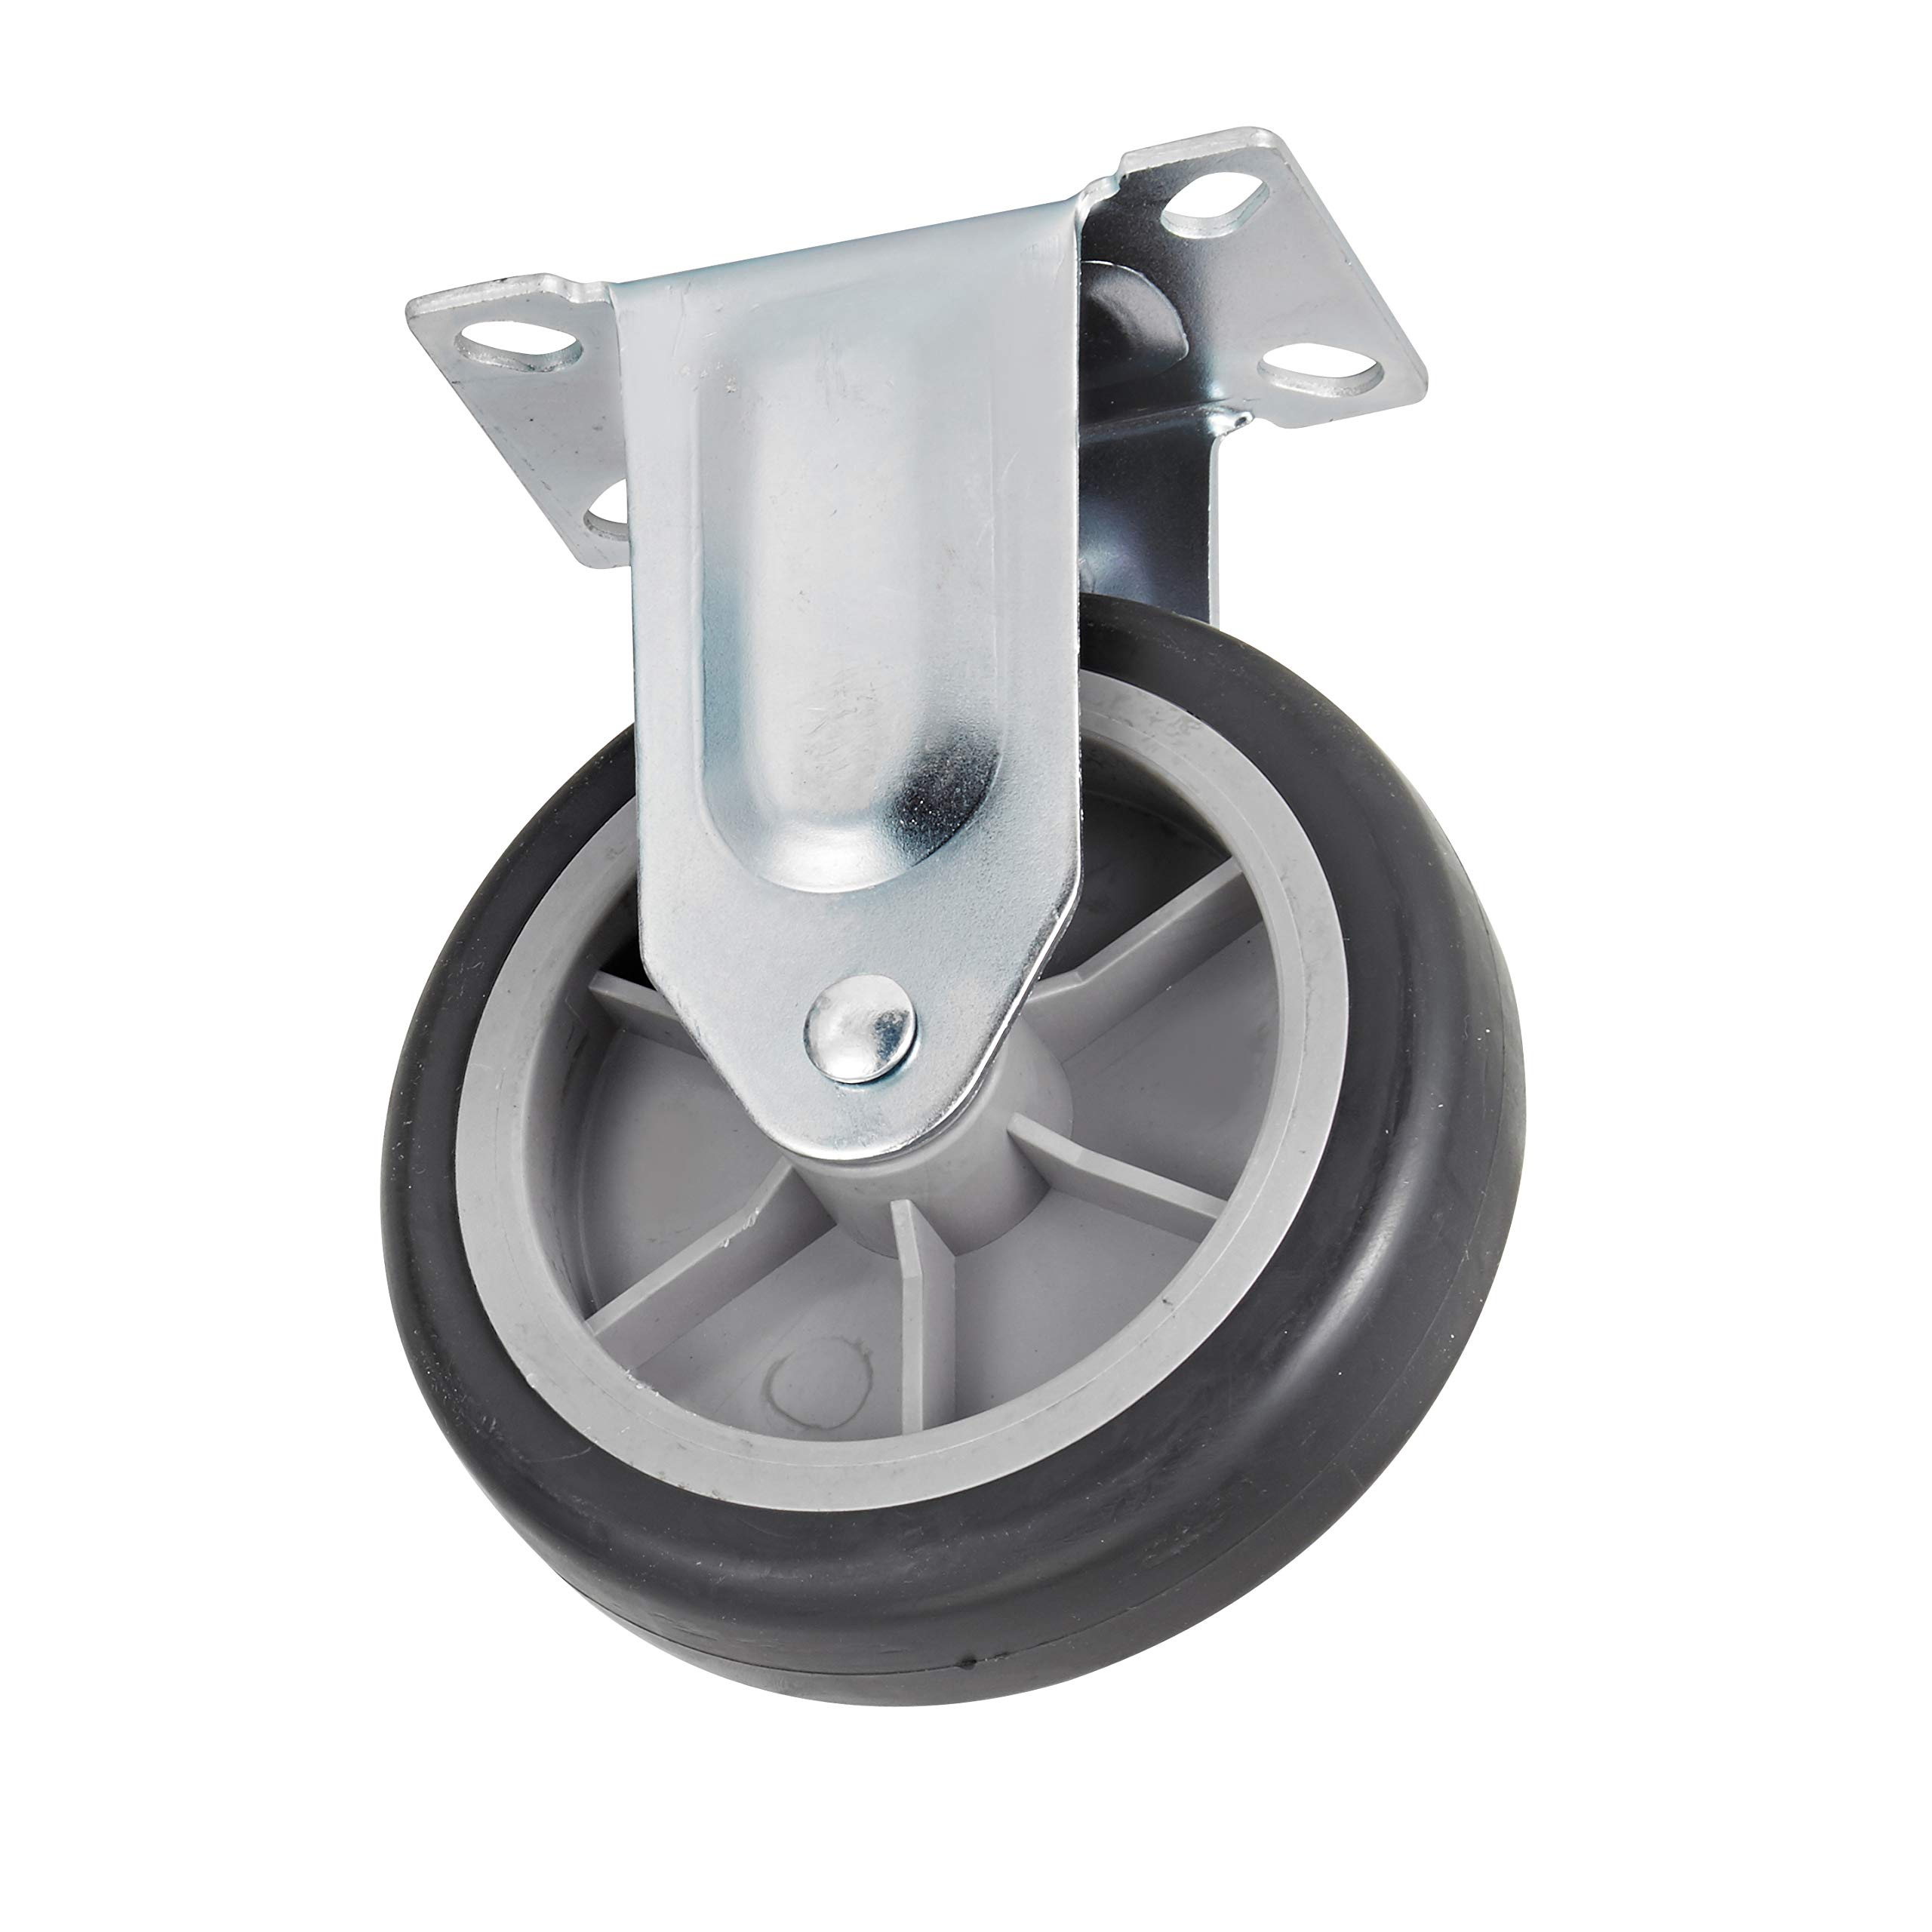 AdirOffice Replacement Castor for The 690-00 AdirOffice Folding Aluminum Platform Truck (Fixed Castor) - Durable Caster Wheels for Industrial & Commercial Use